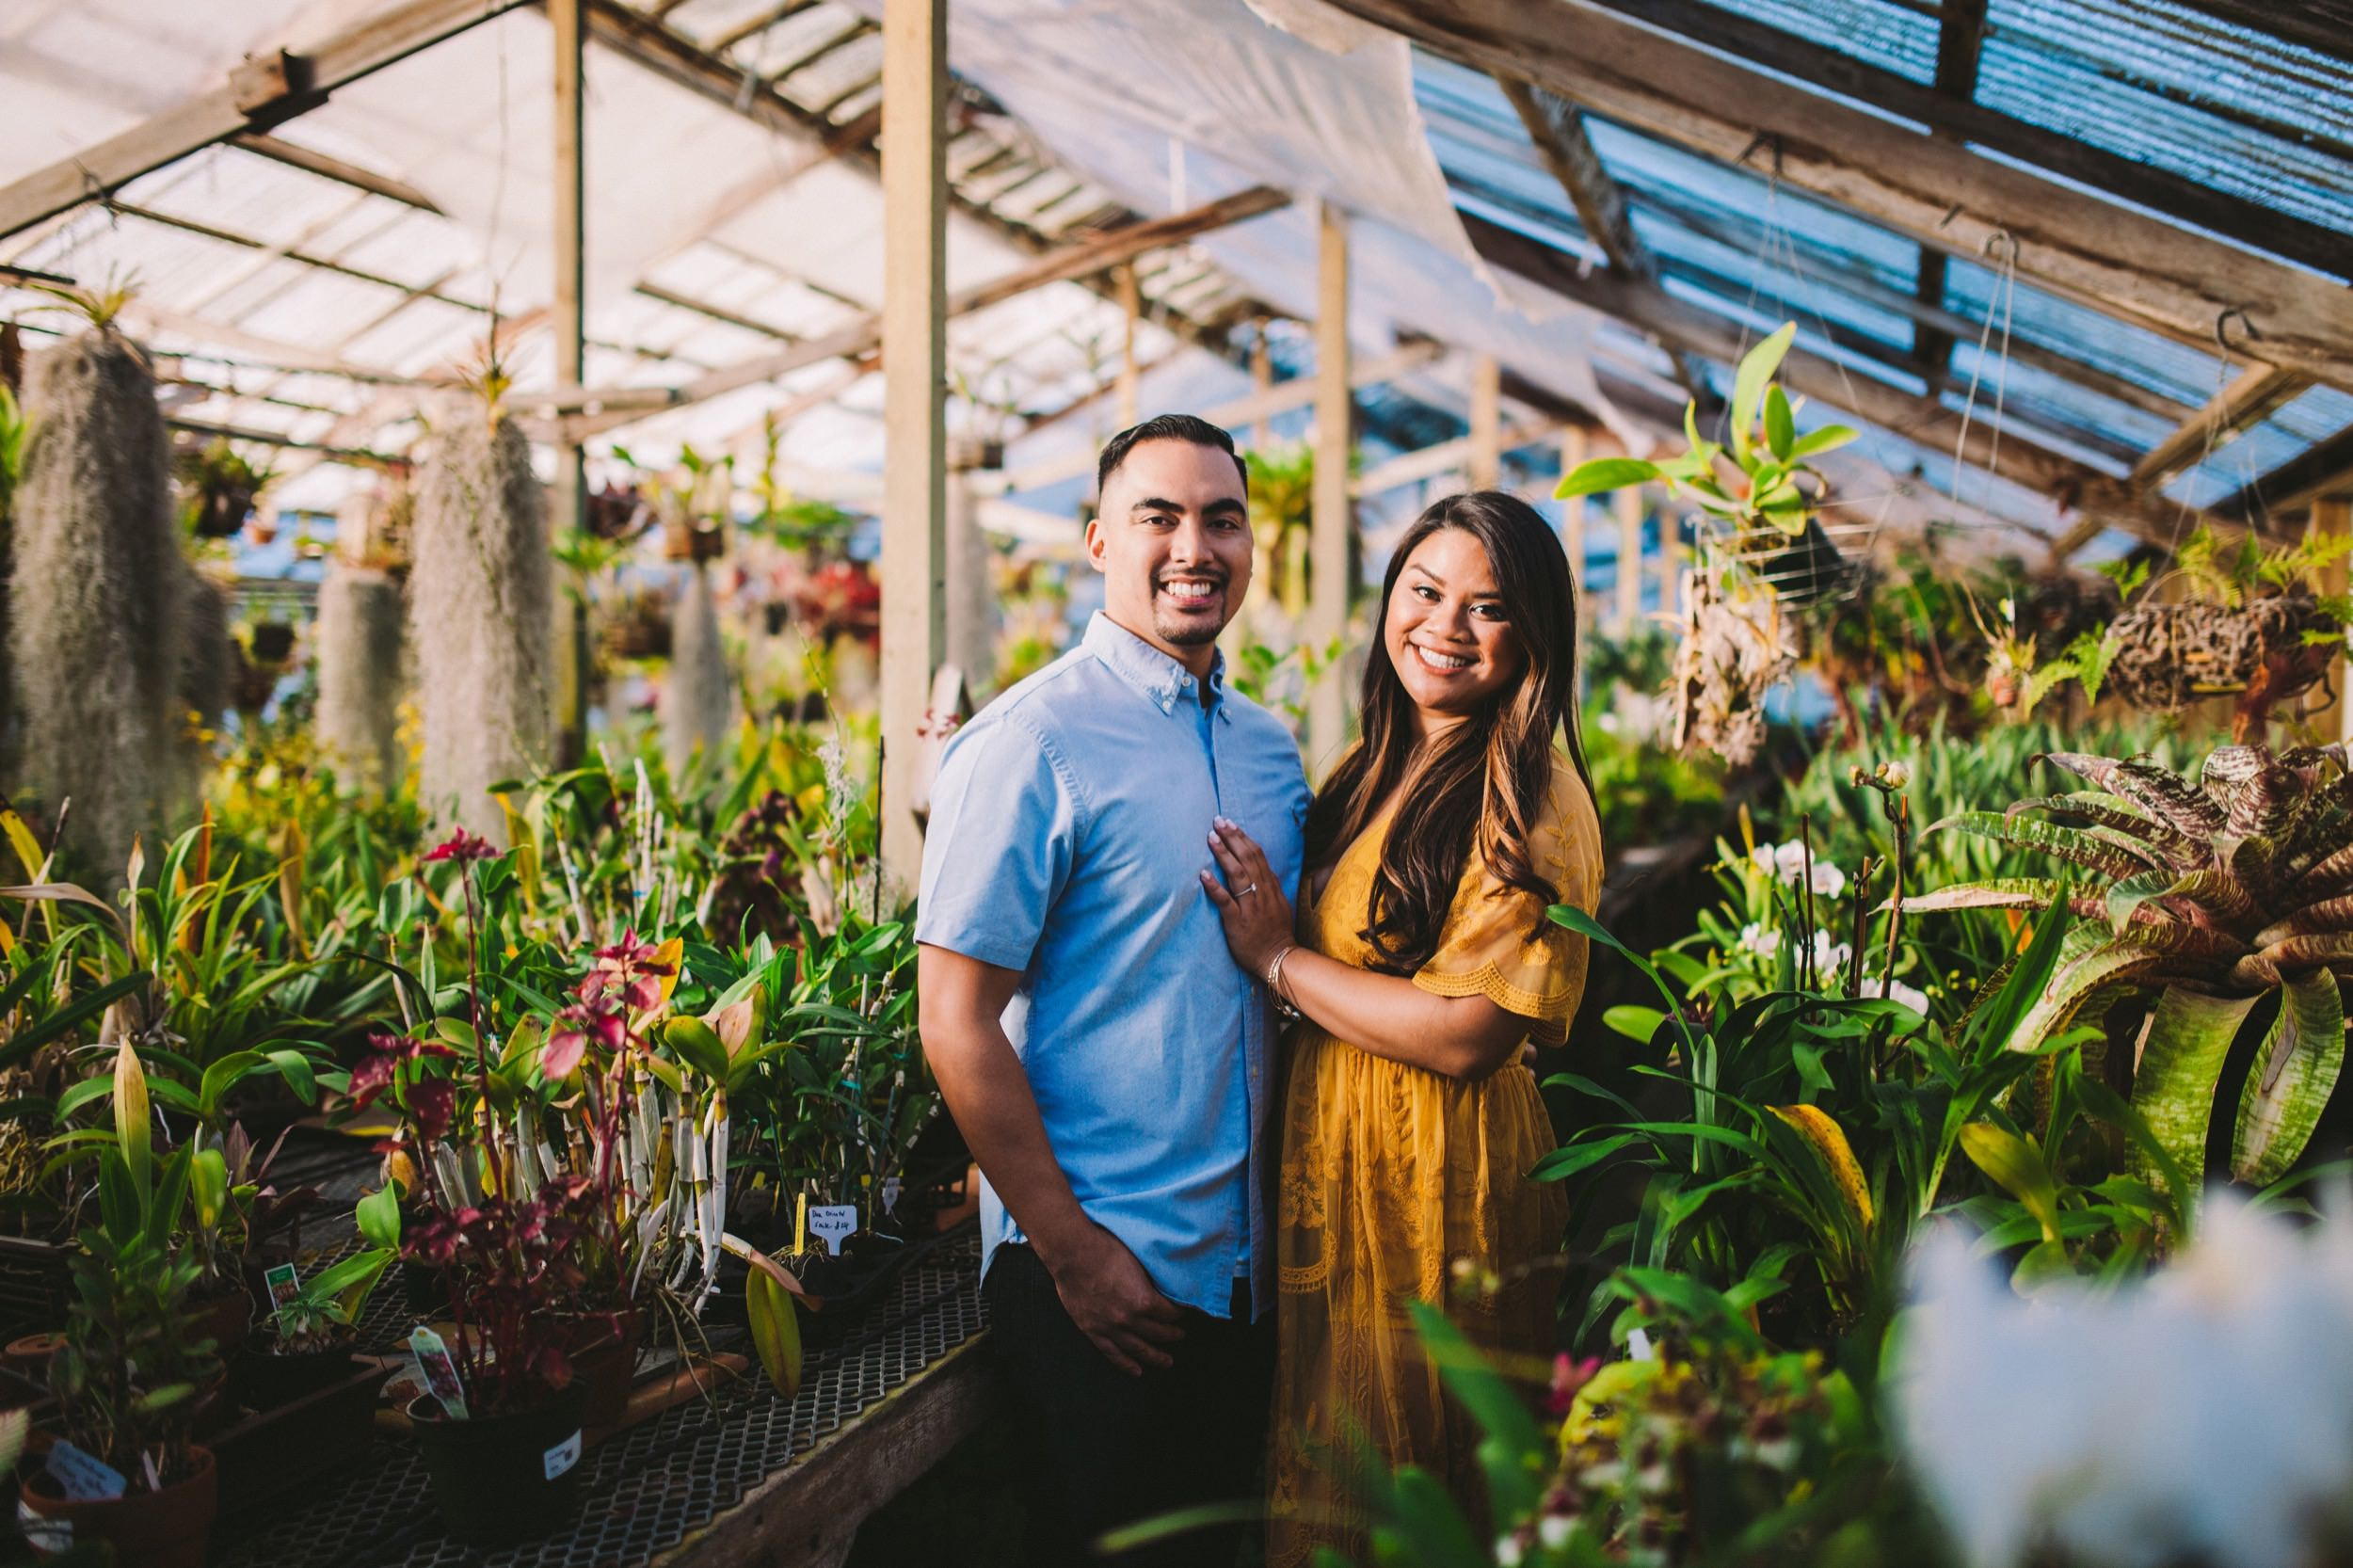 Shelldance Orchid Gardens Greenhouse Engagement Session Pacifica 31.jpg